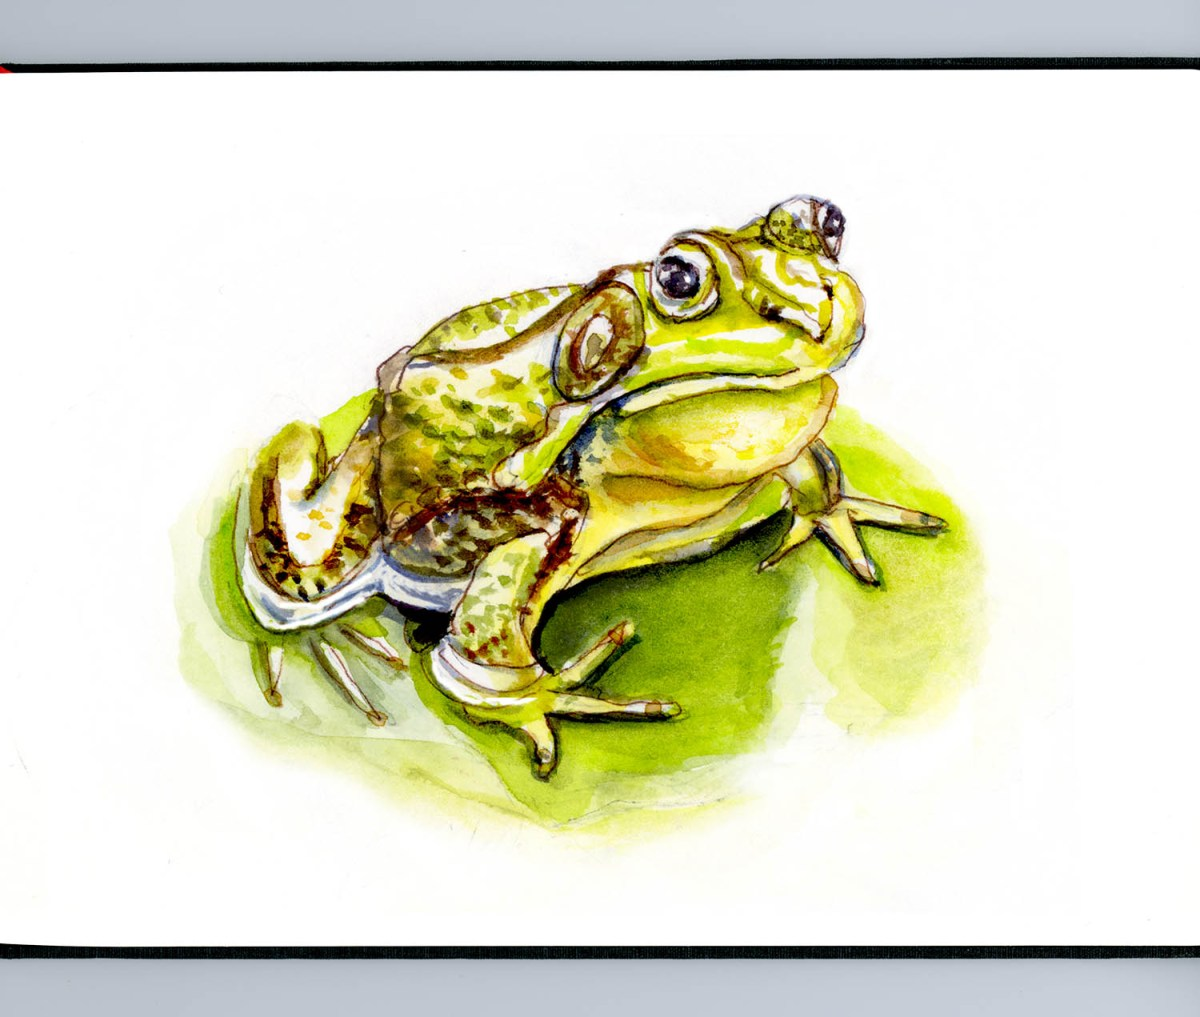 #WorldWatercolorGroup - Day 19 - Kissing A Frog - Doodlewash